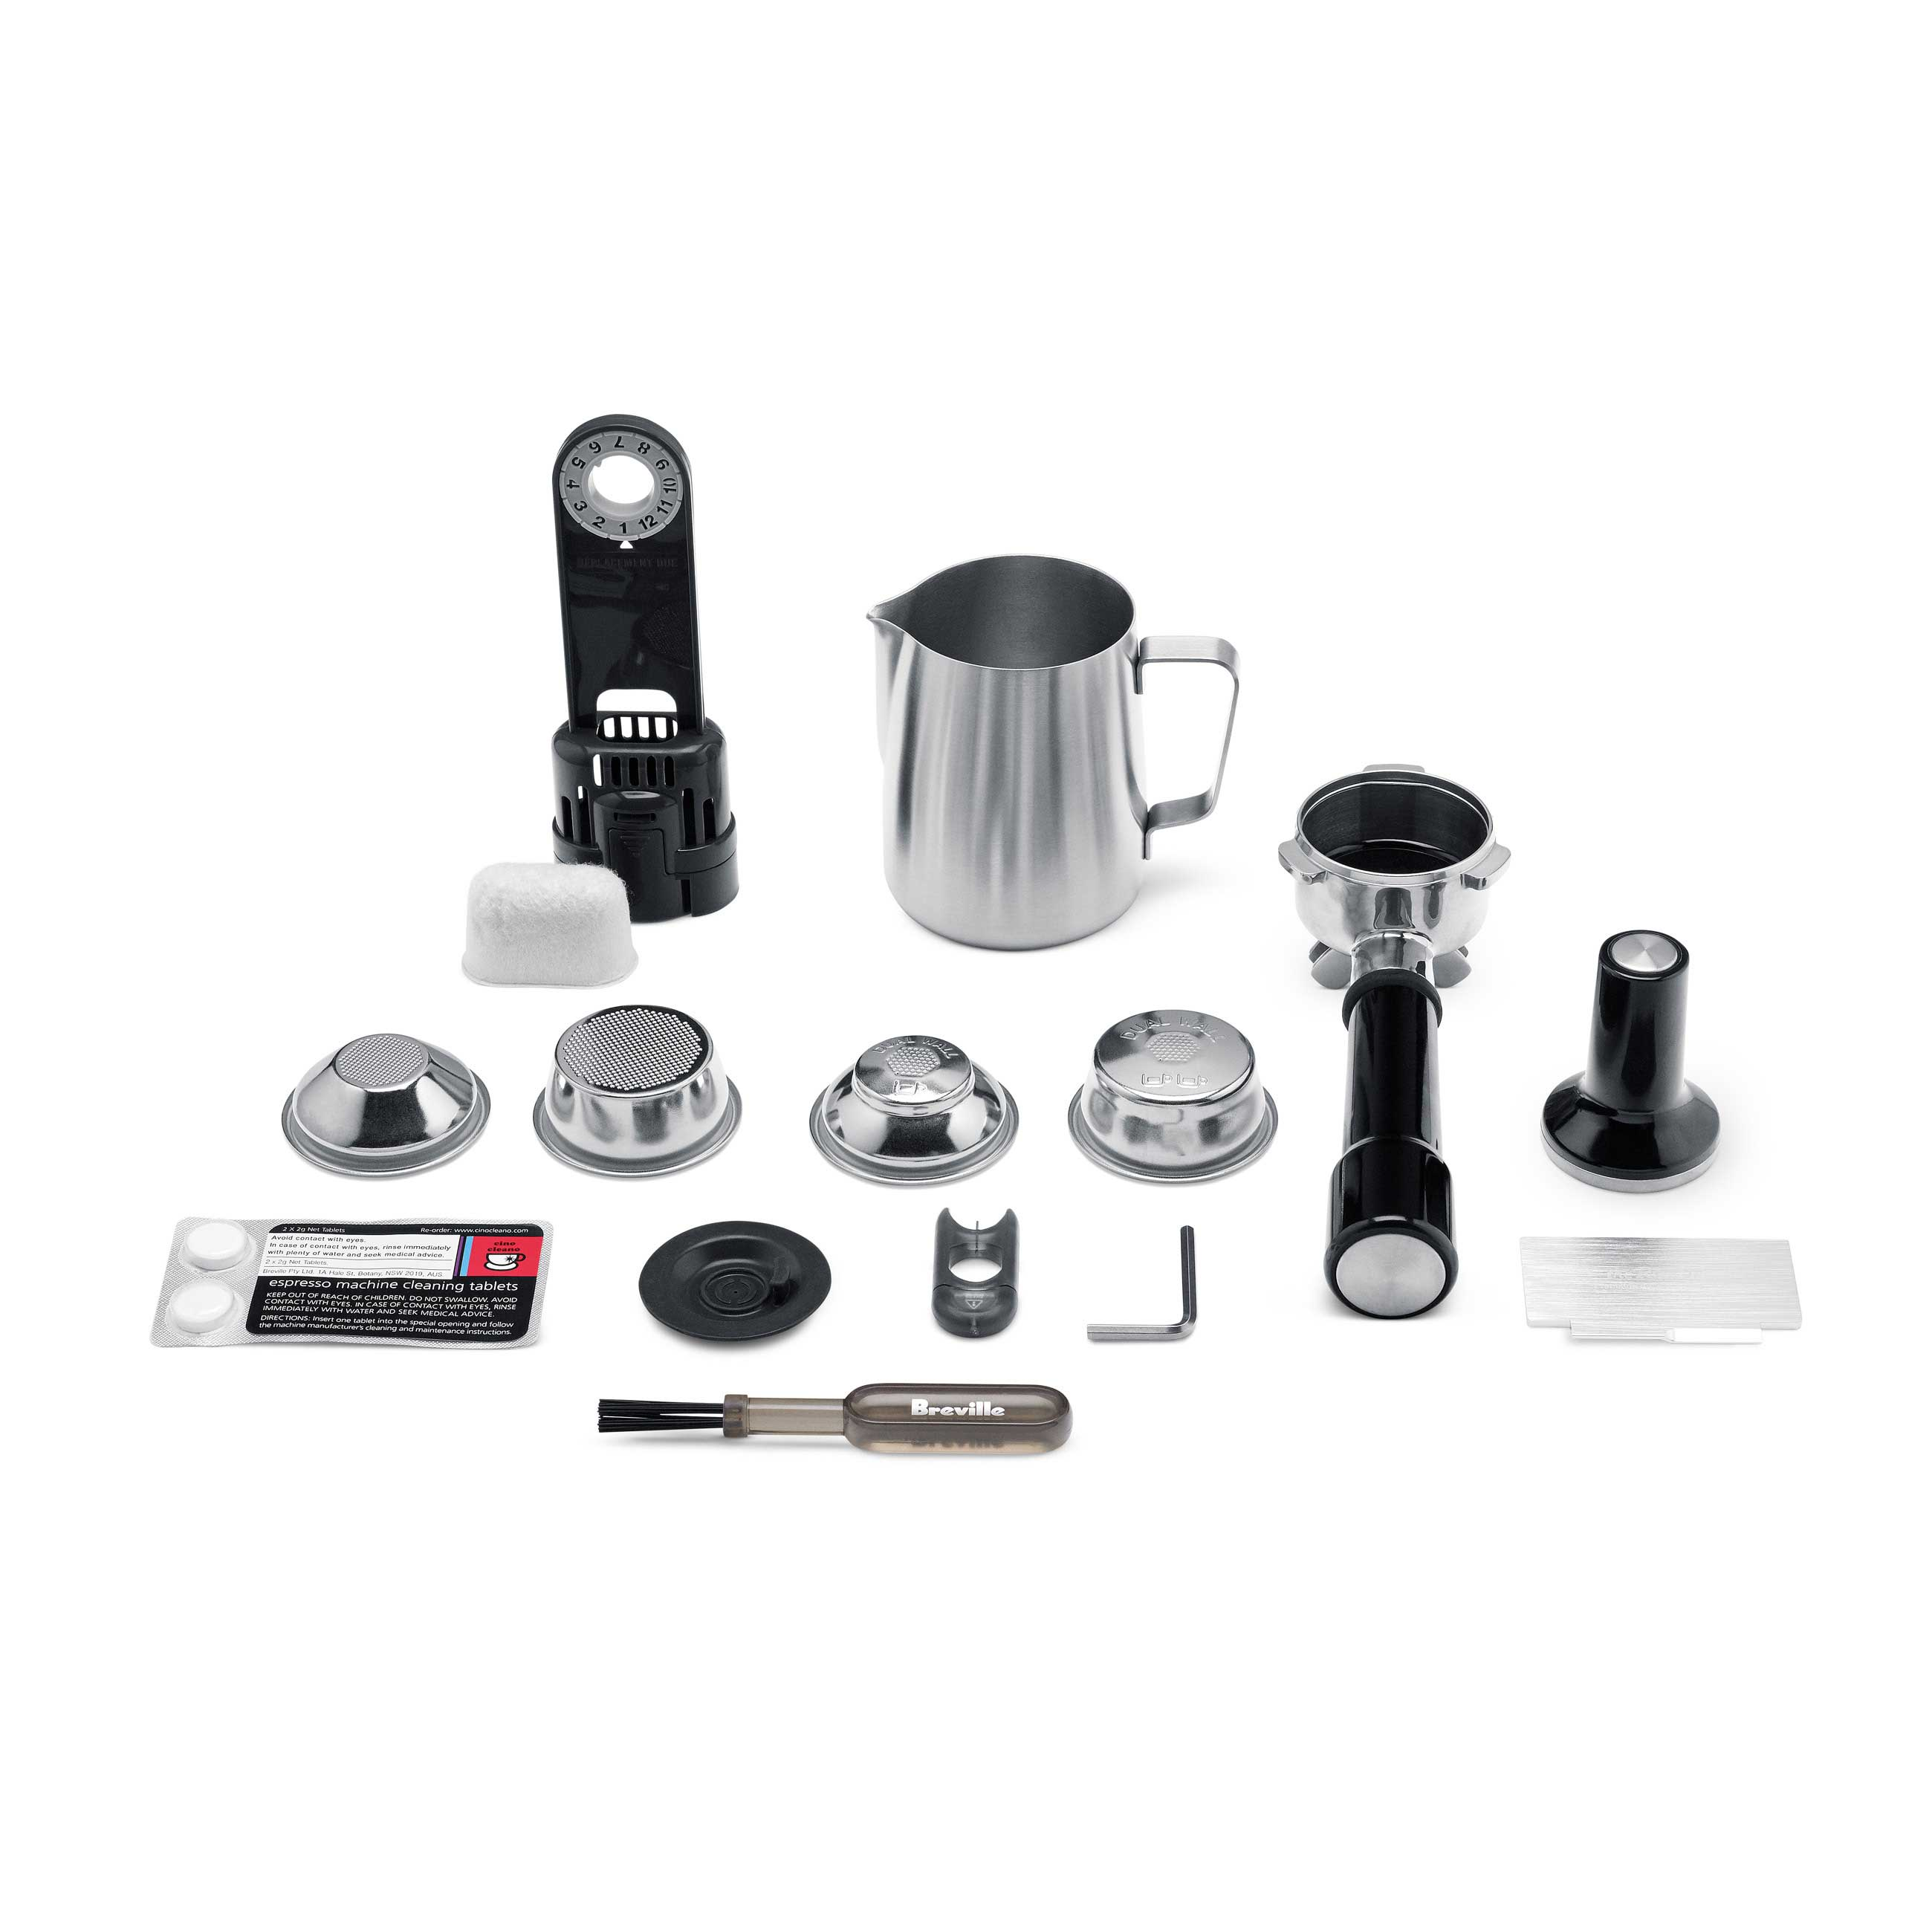 the Oracle® Espresso in Brushed Stainless Steel included kit